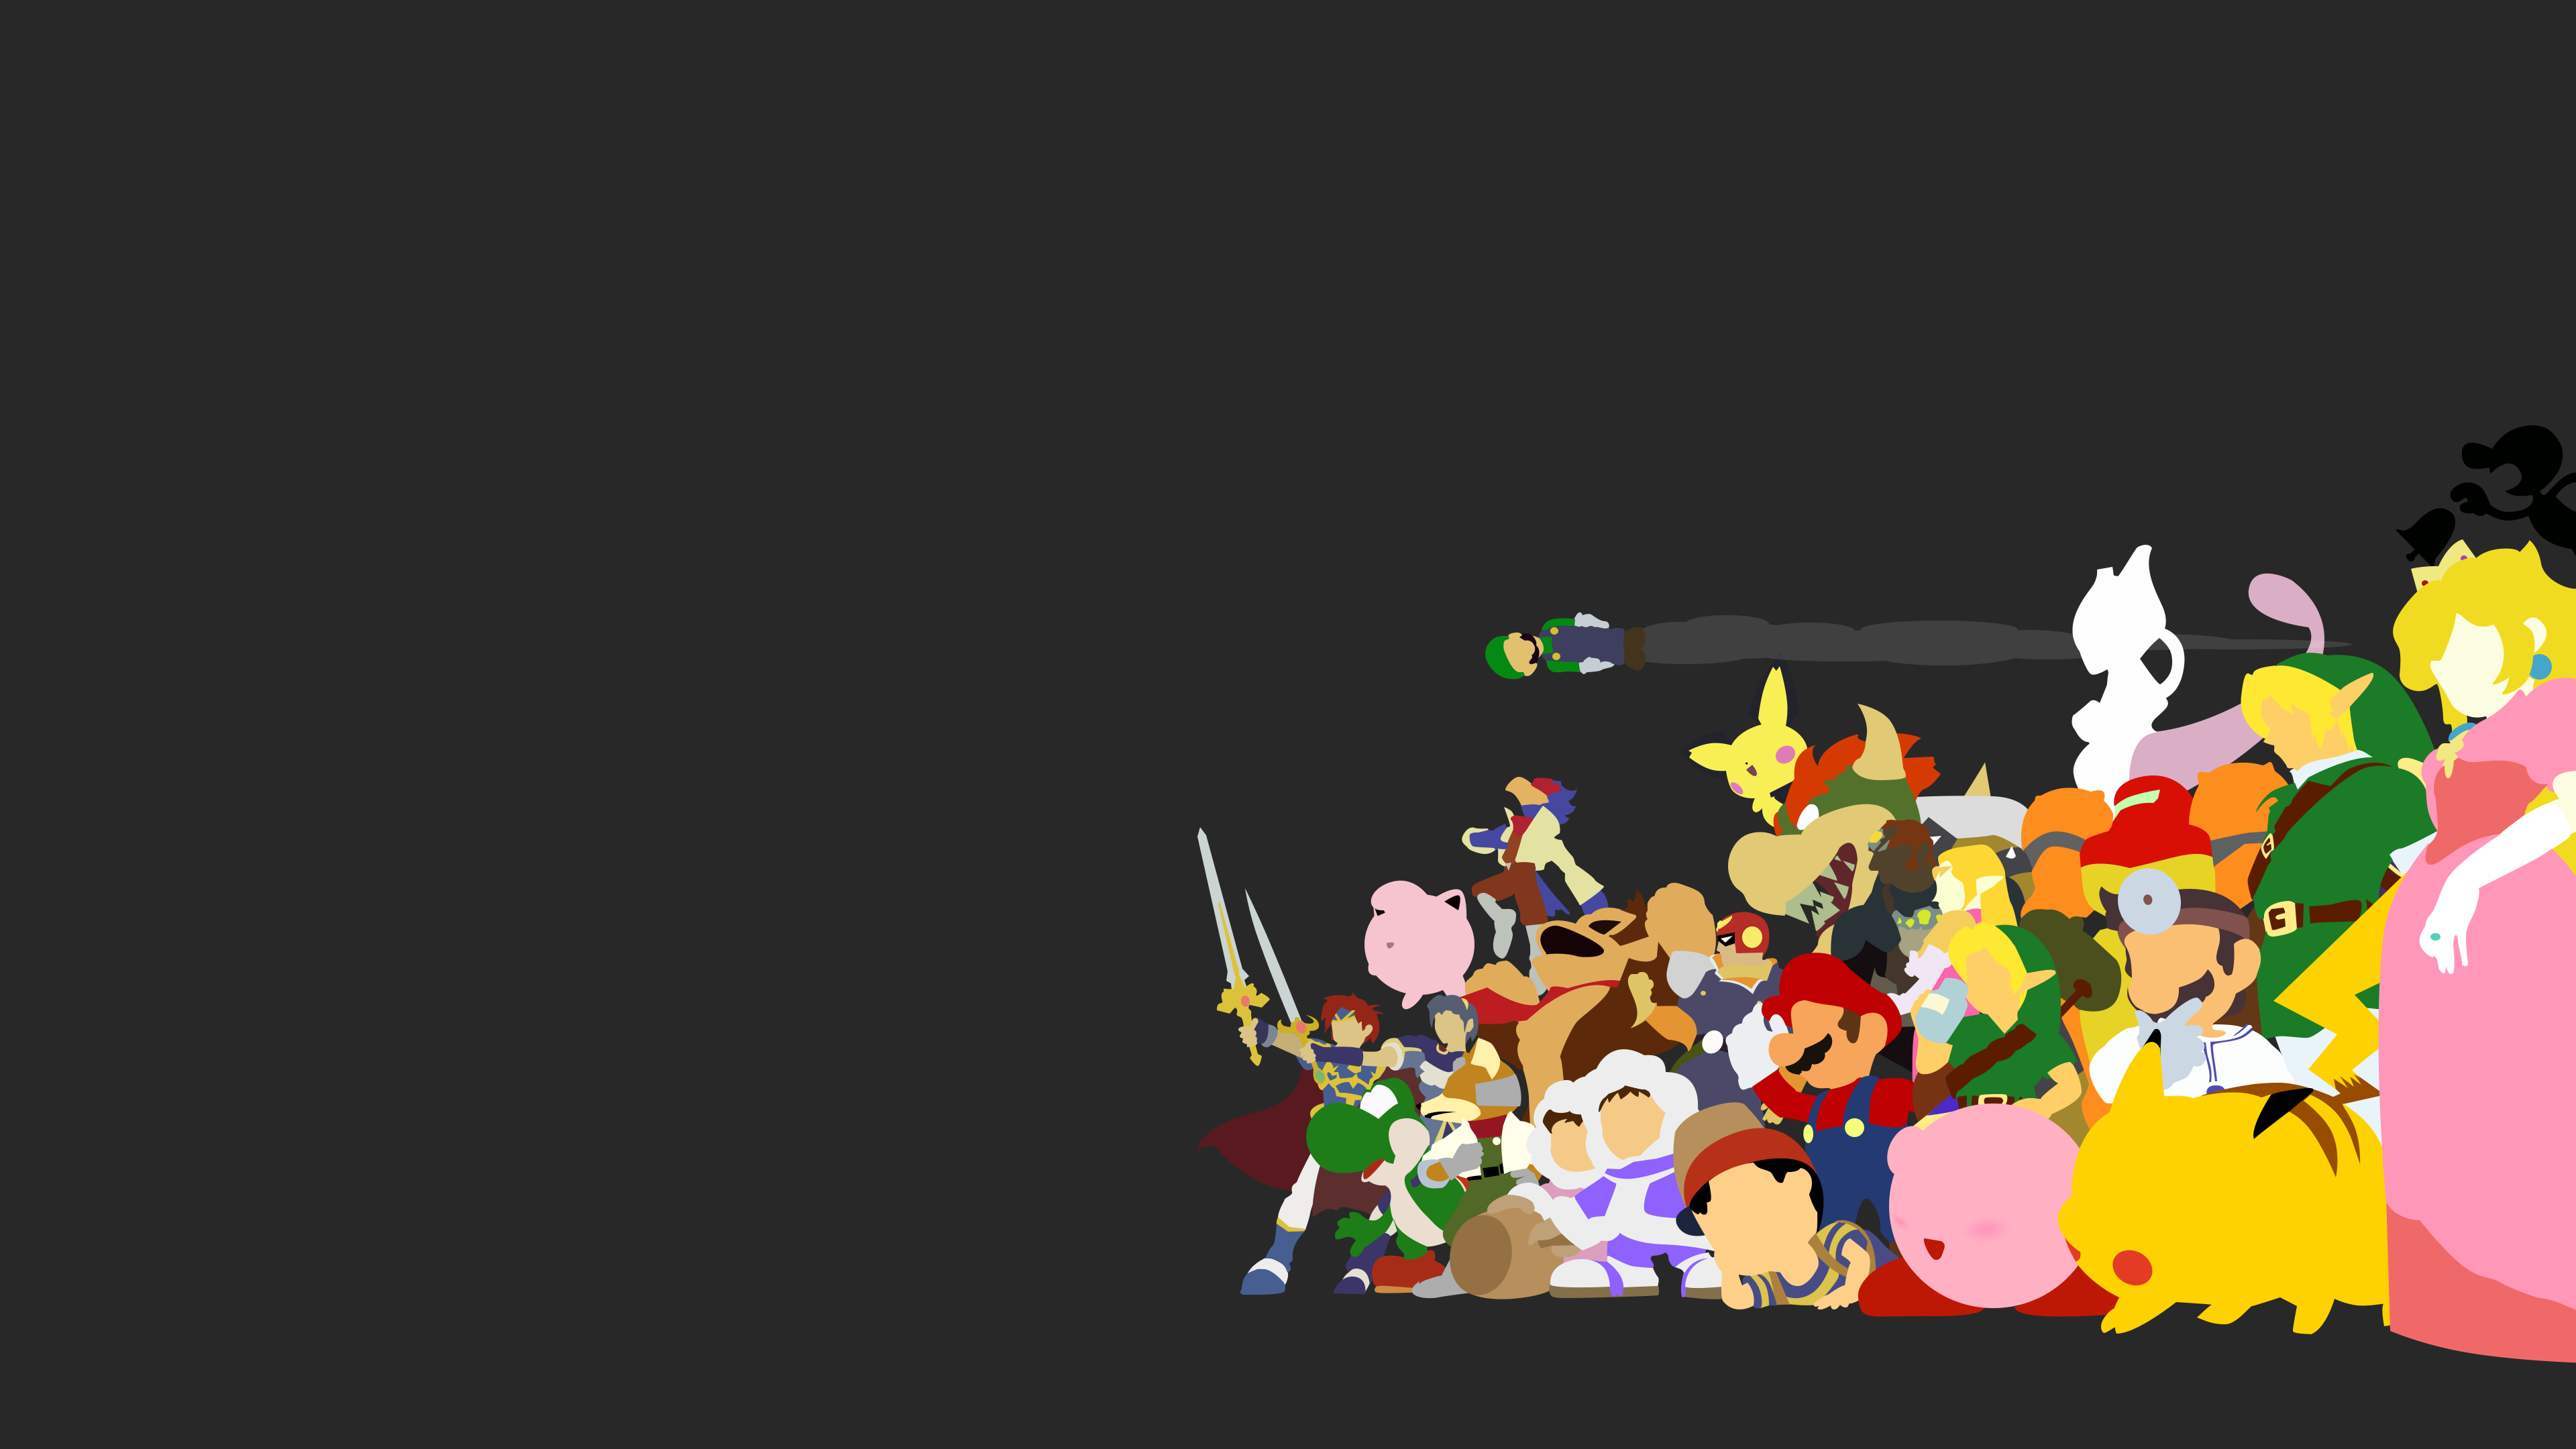 Melee Wallpaper